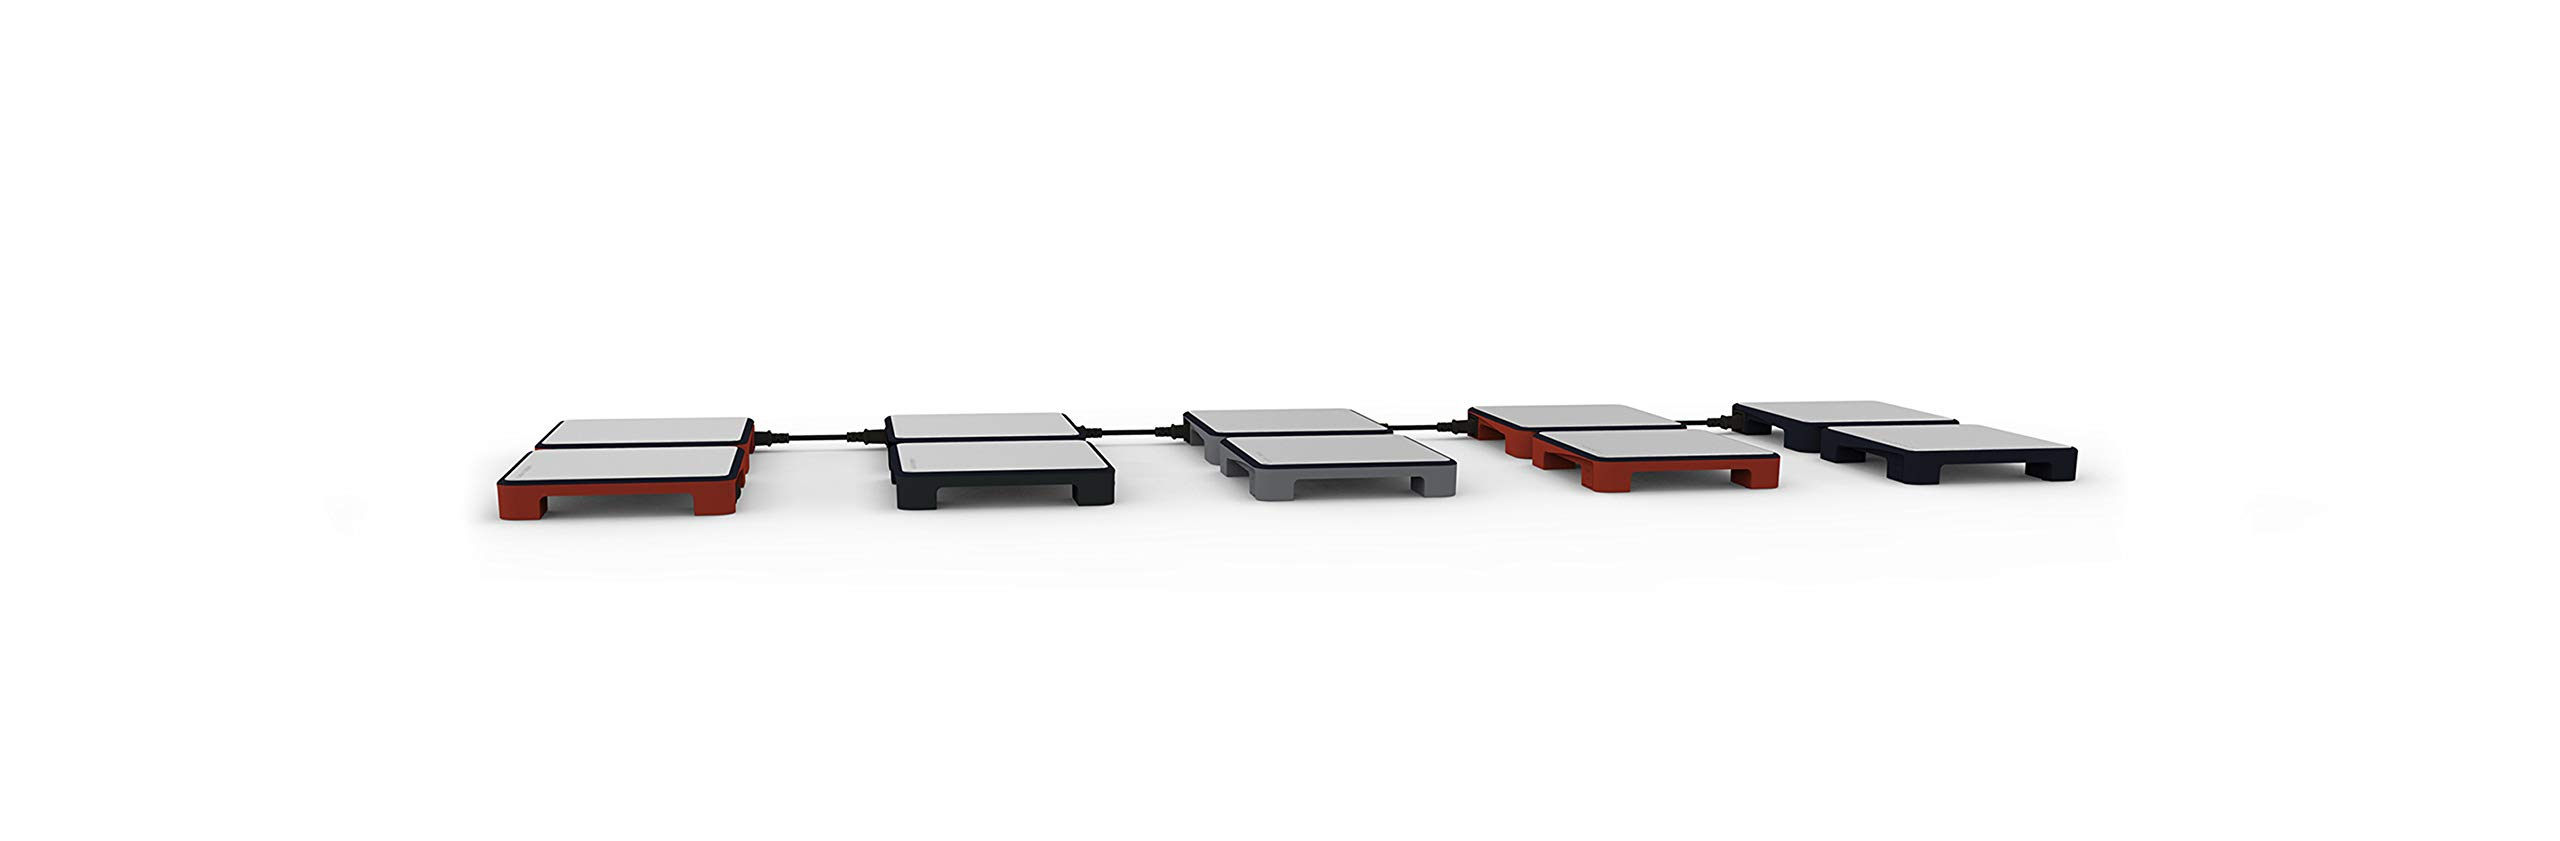 Modular Electric Warming Trays | Folding Trays, Temperature Adjustable, Heated Plates for Easy Serving in Events, Home Parties | Connect Up to 5 Units (5 PACK - 10 Heating Surfaces) (Grey) by homeart